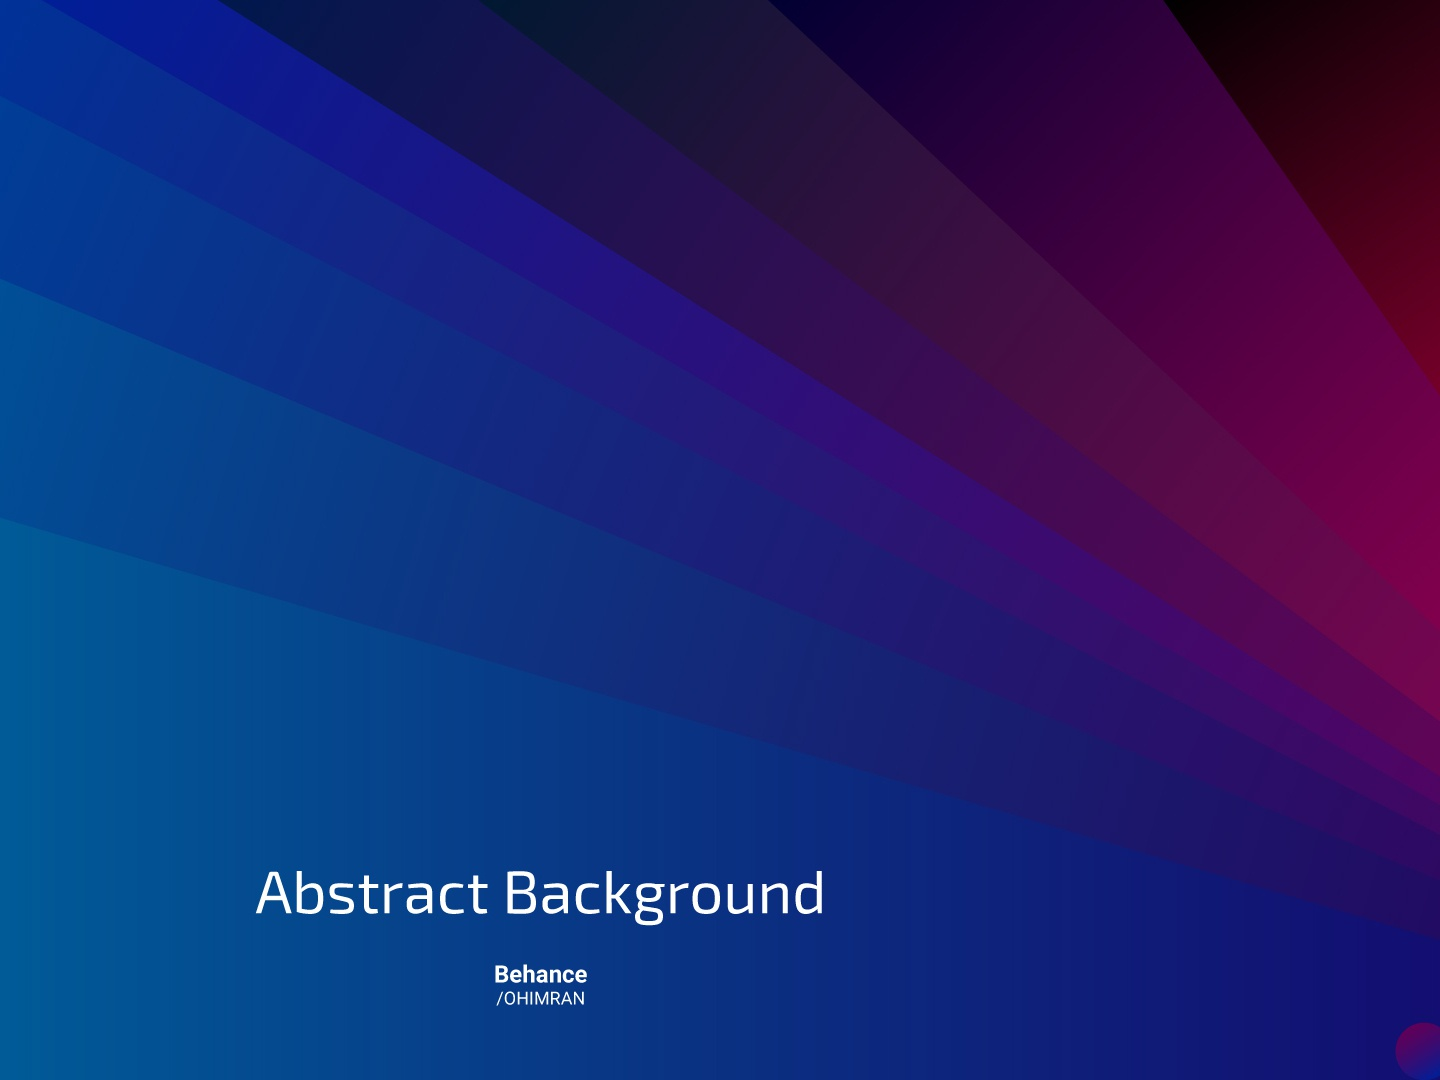 Unduh 80 Background Design HD Terbaik